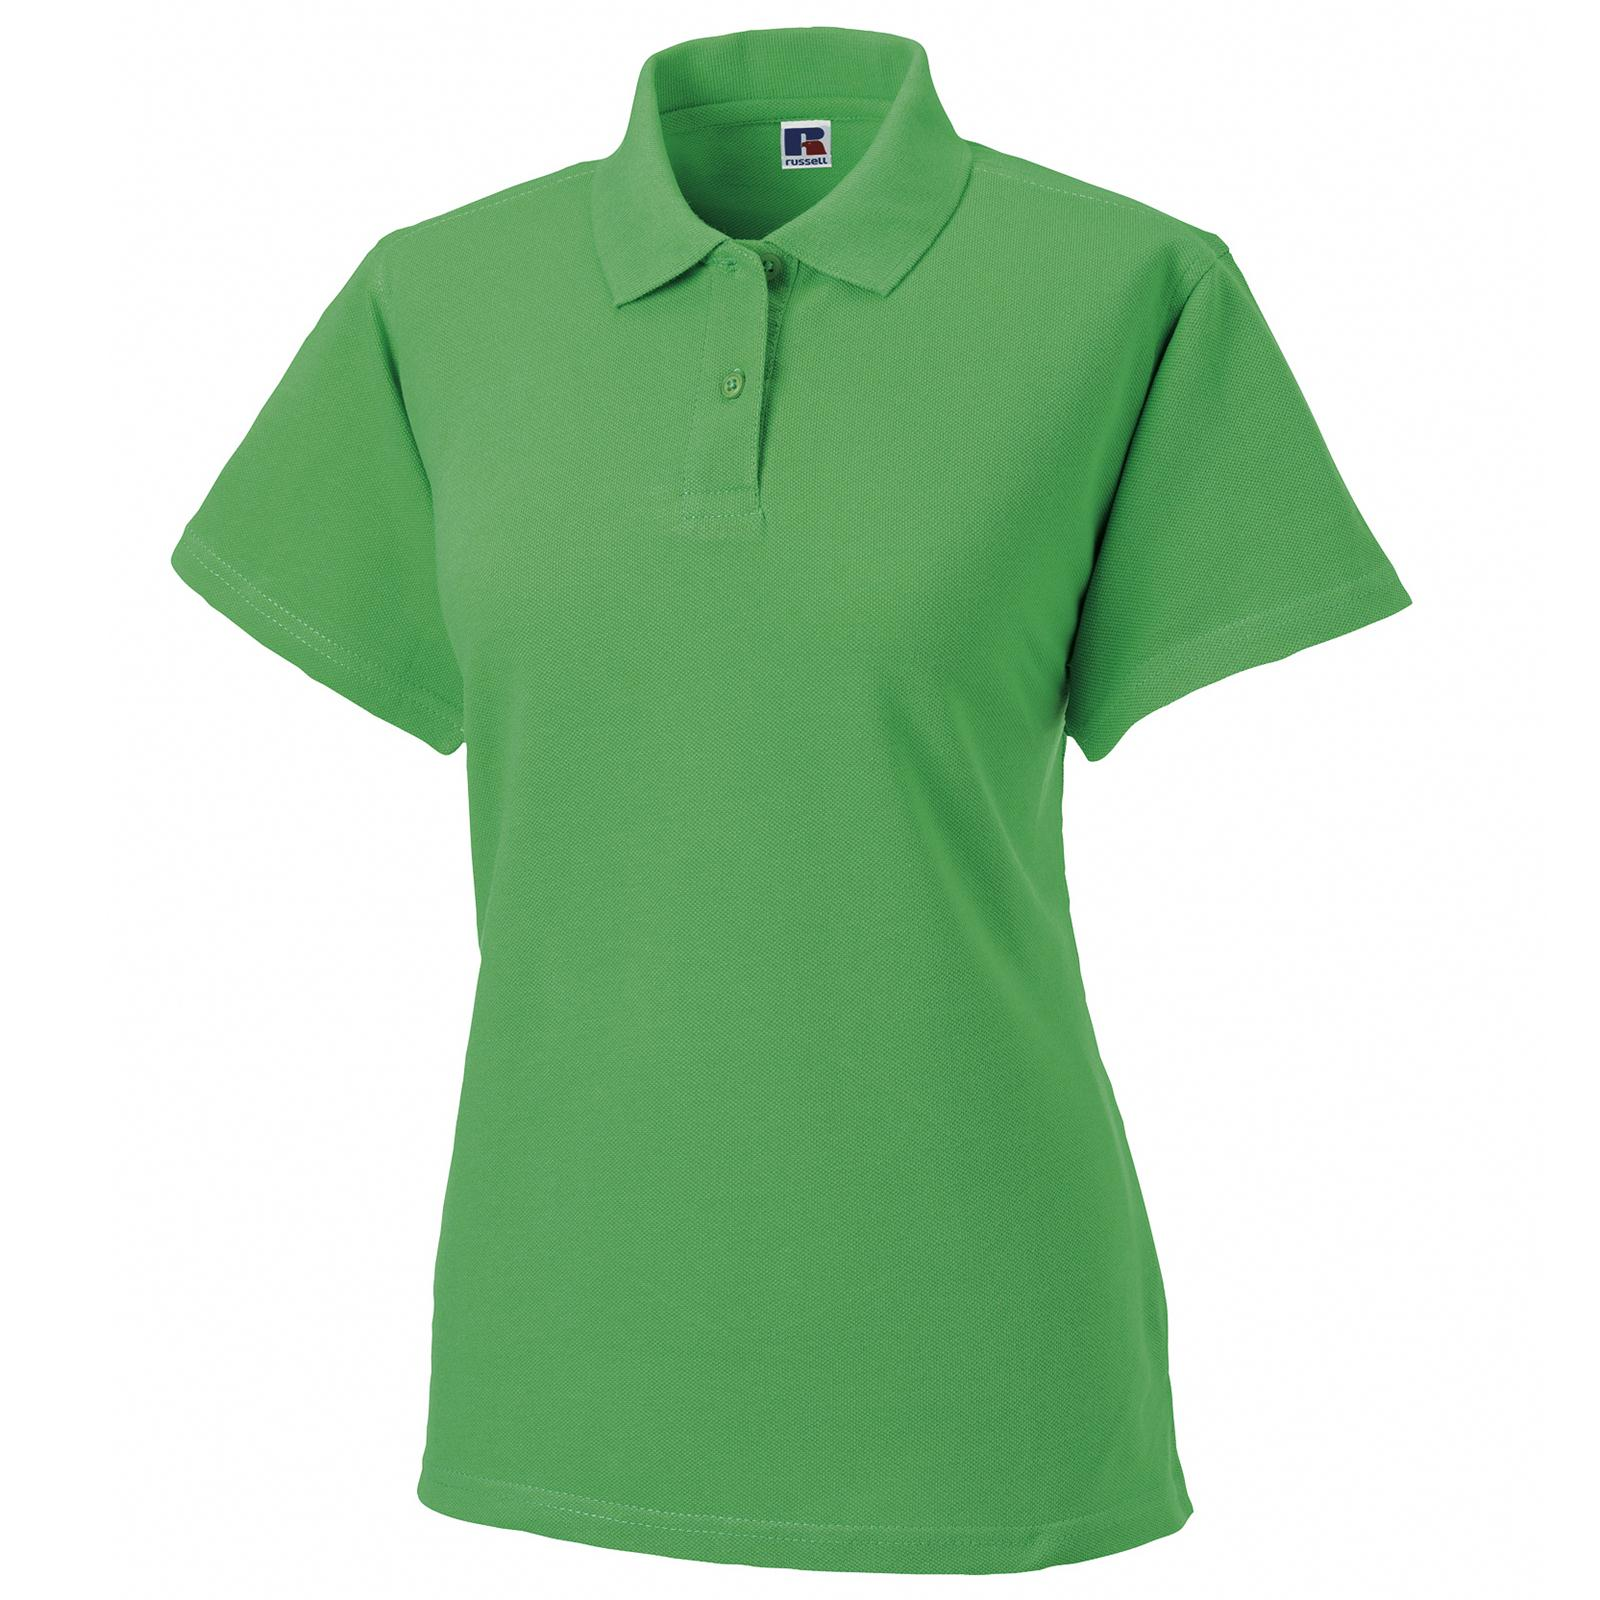 New jerzees womens ladies 100 cotton polo shirt in 12 for Womens golf shirts xxl